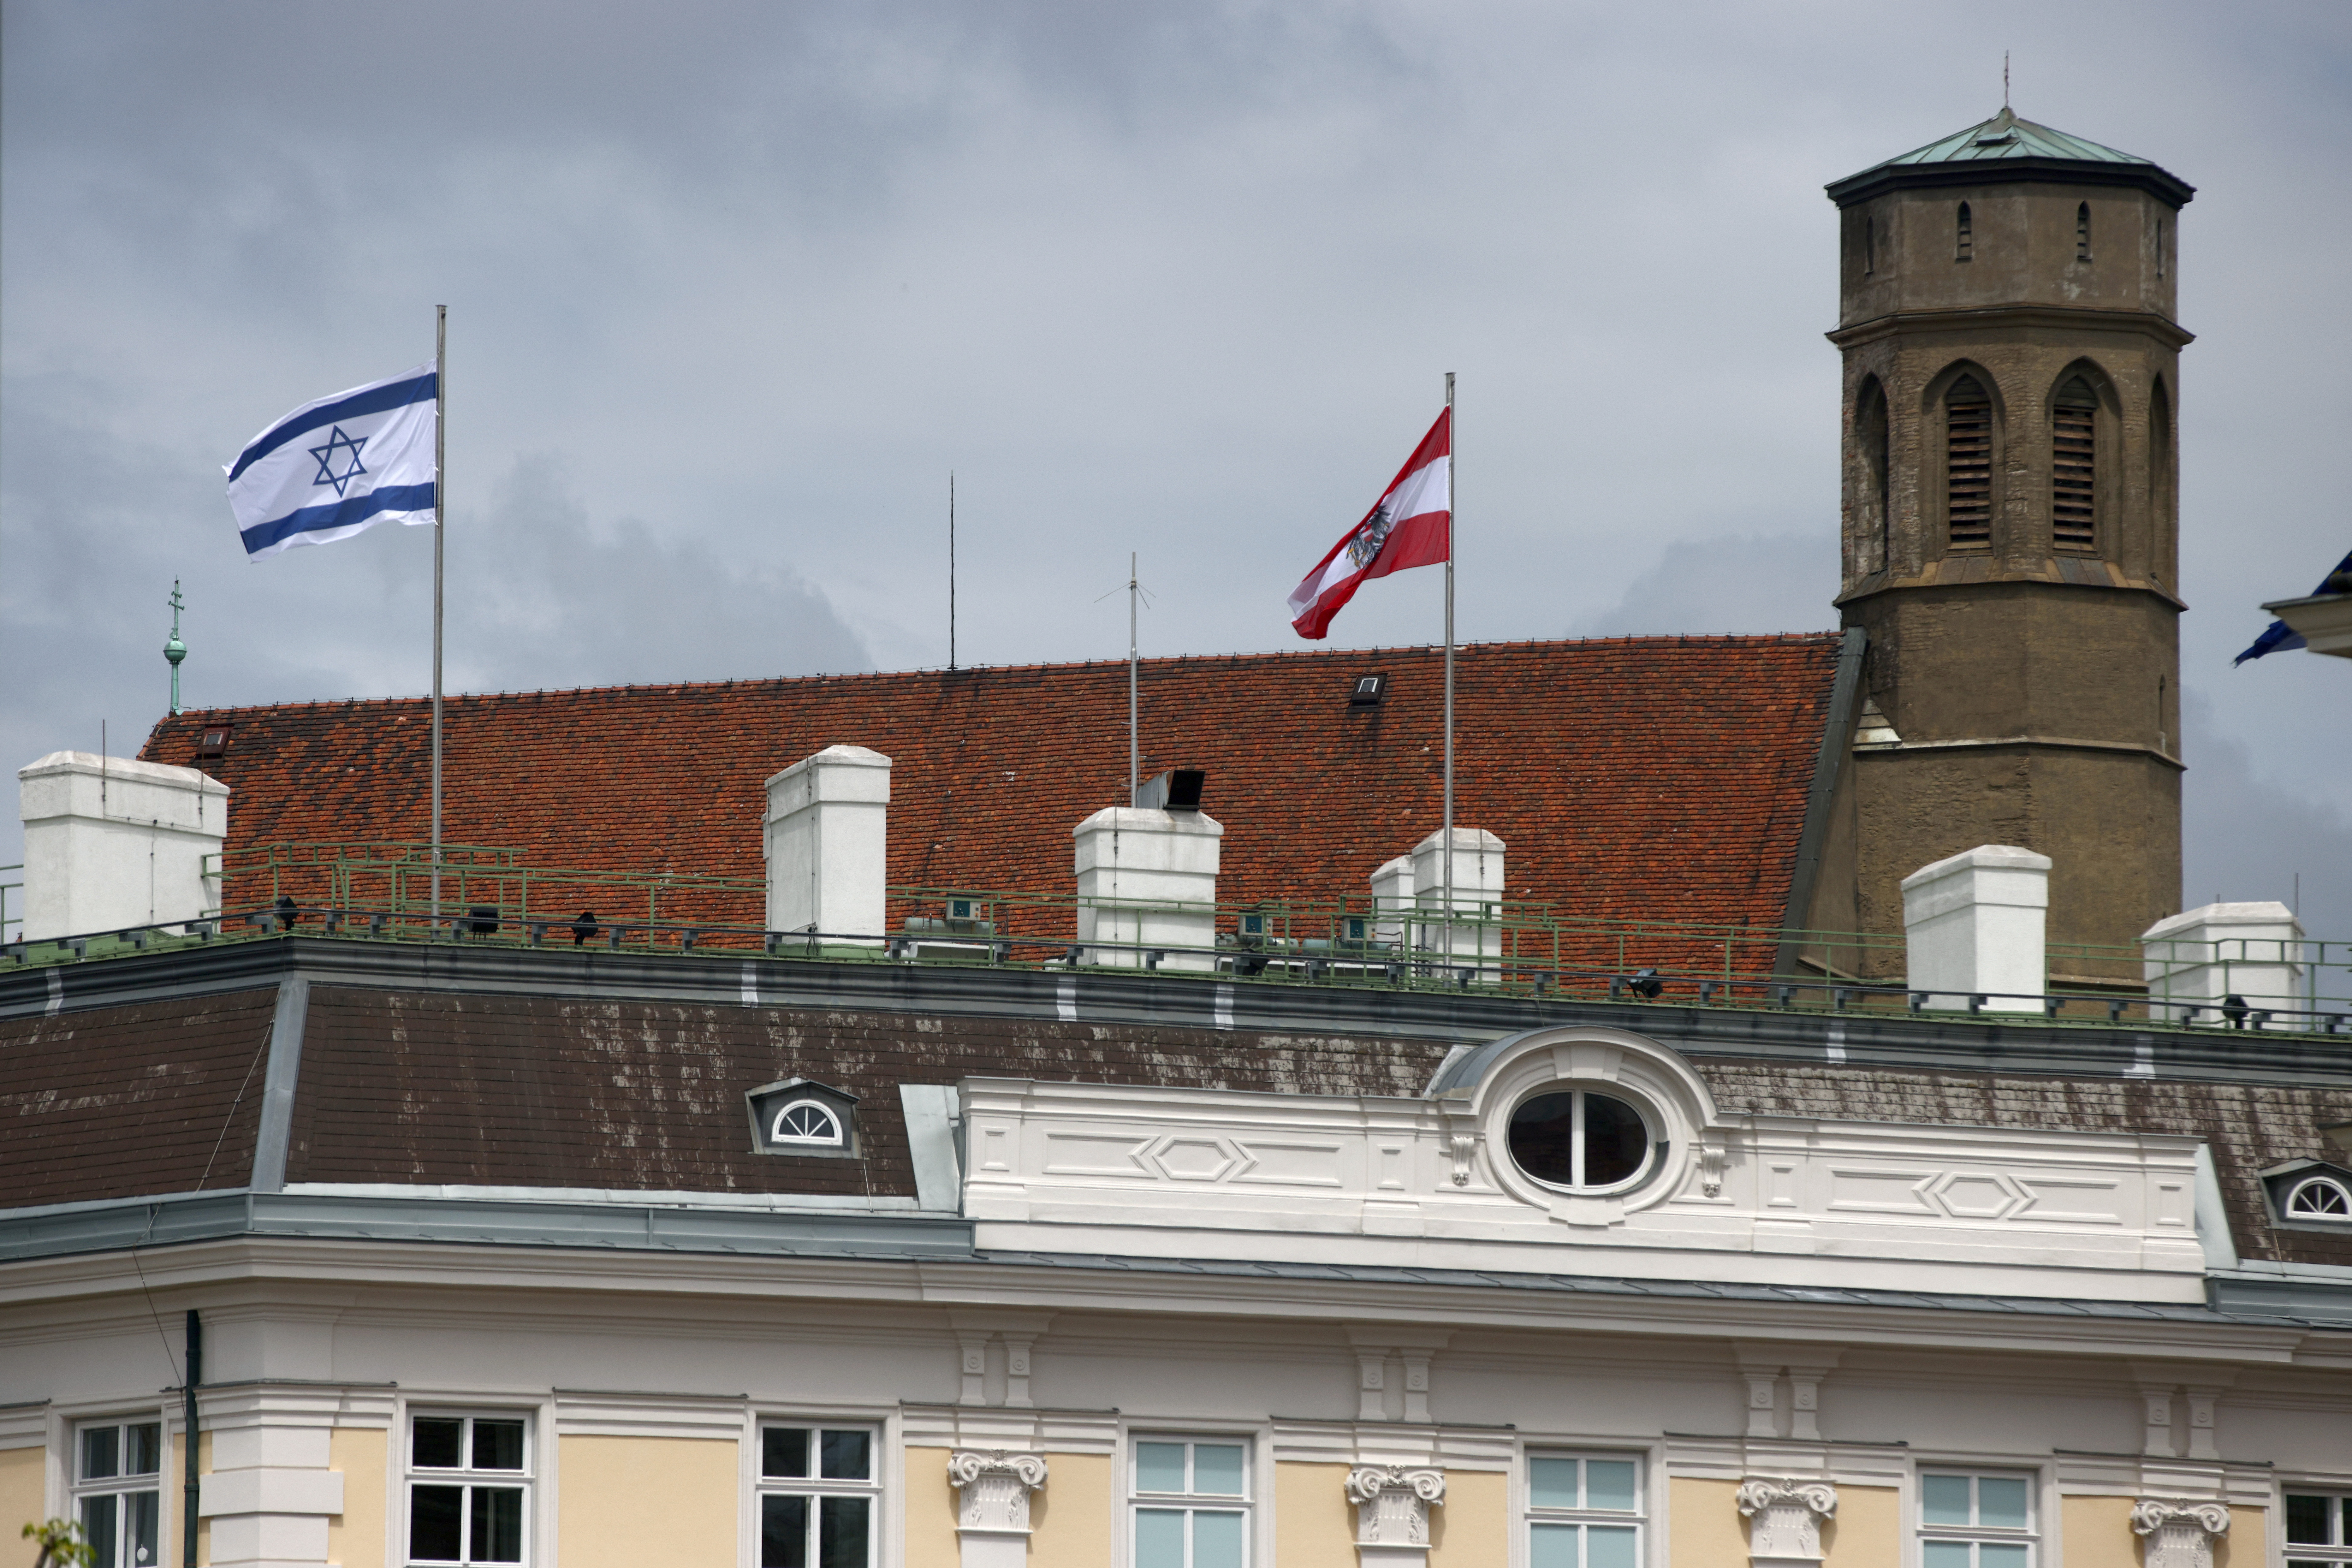 The national flag of Israel is seen atop the federal chancellery in Vienna, Austria May 15, 2021. REUTERS/Lisi Niesner